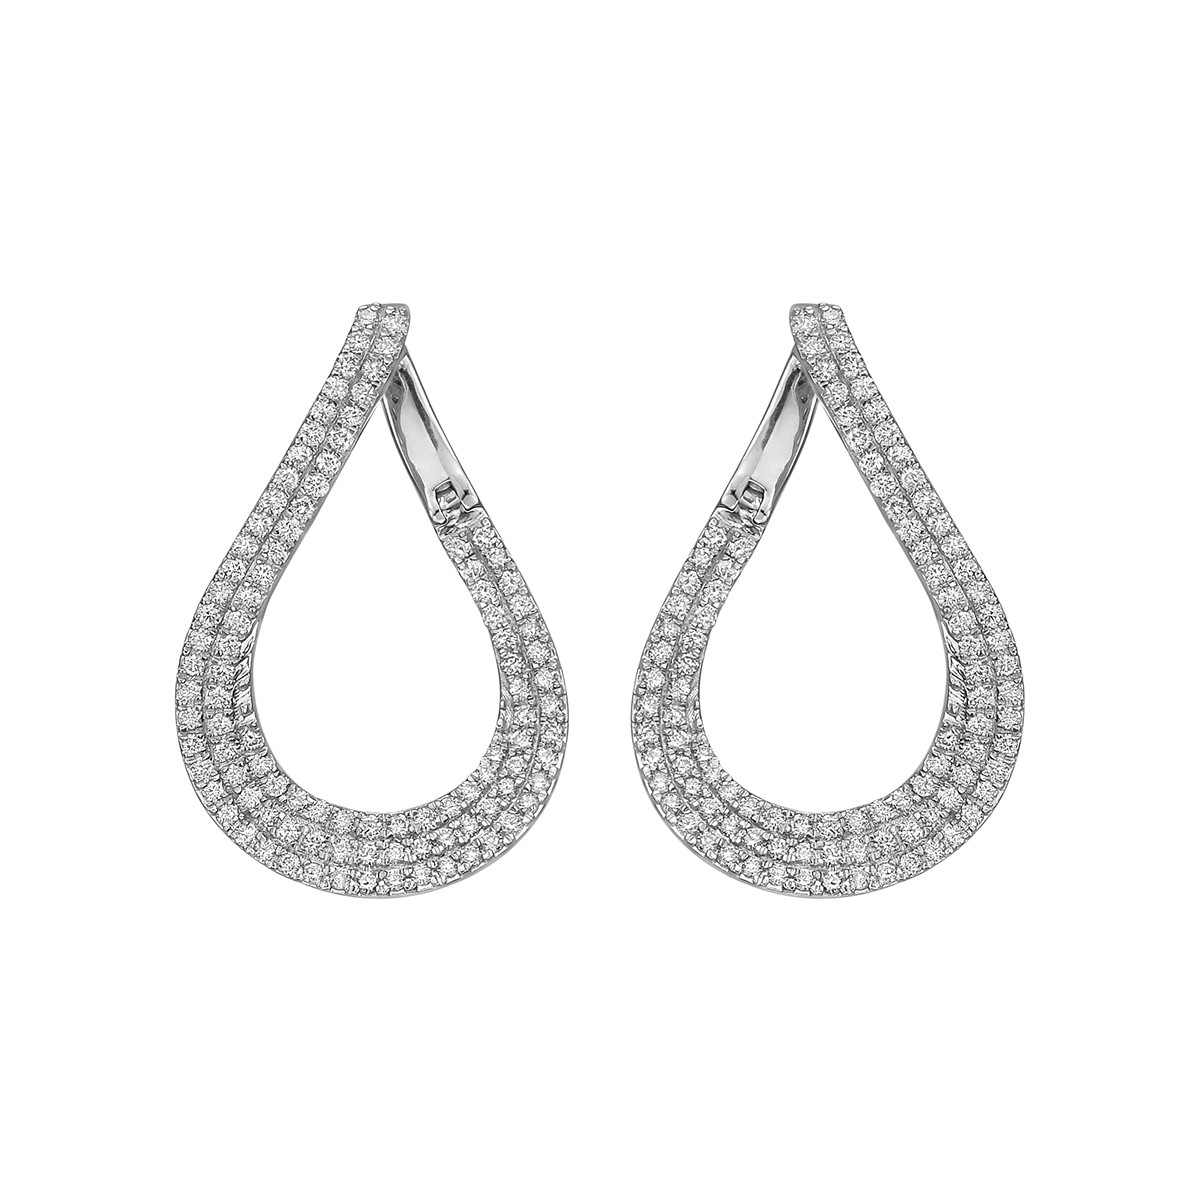 Pavé Diamond Pear-Shaped Hoop Earrings